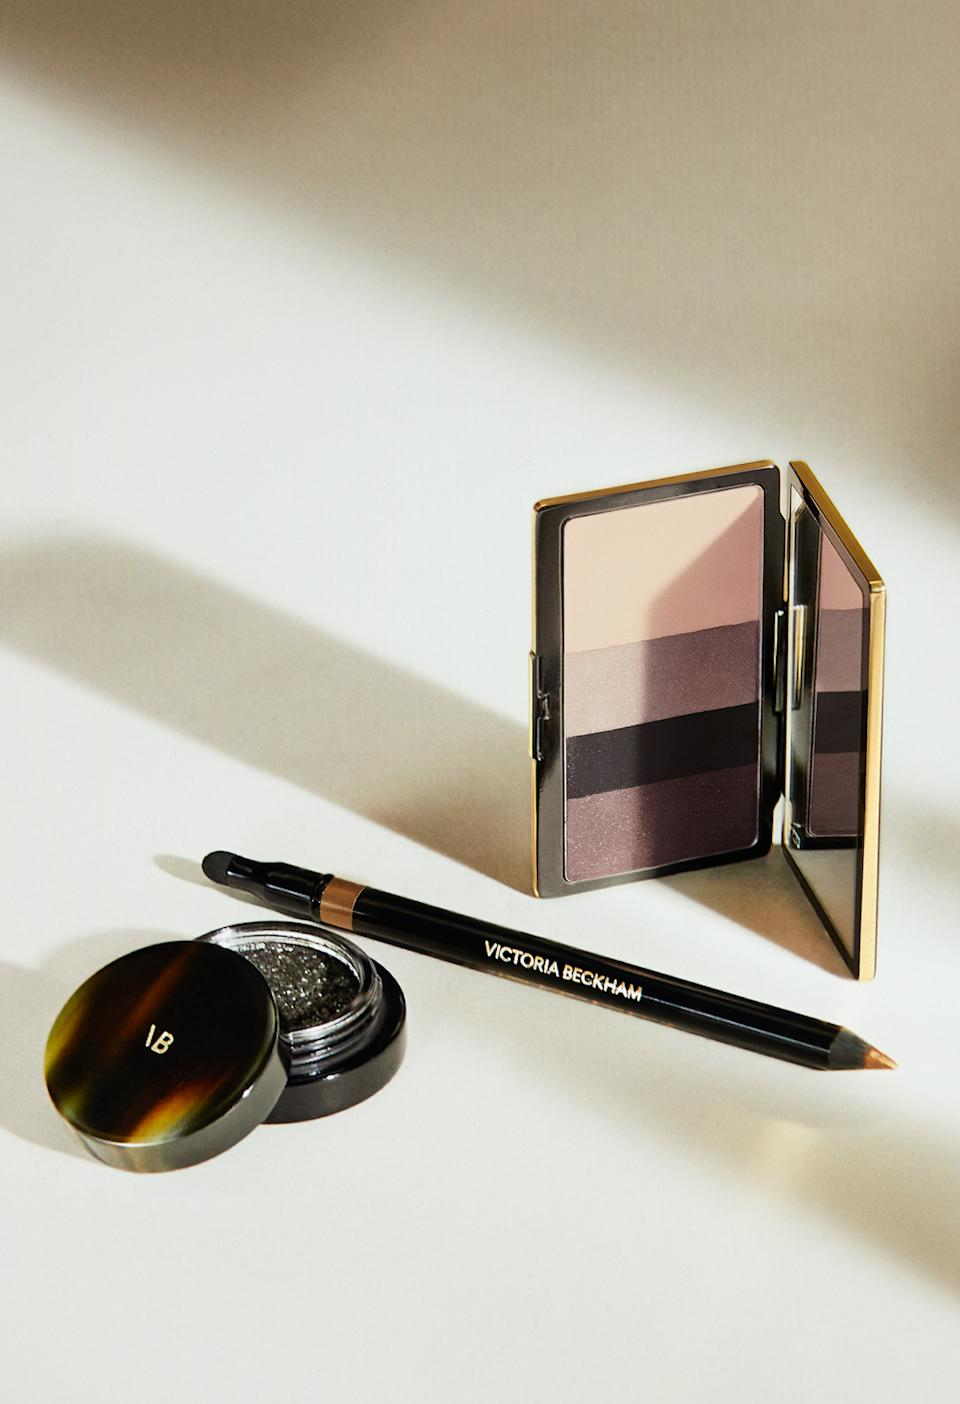 The Victoria Beckham Beauty collection features a selection of eye products [Photo: Victoria Beckham Beauty]